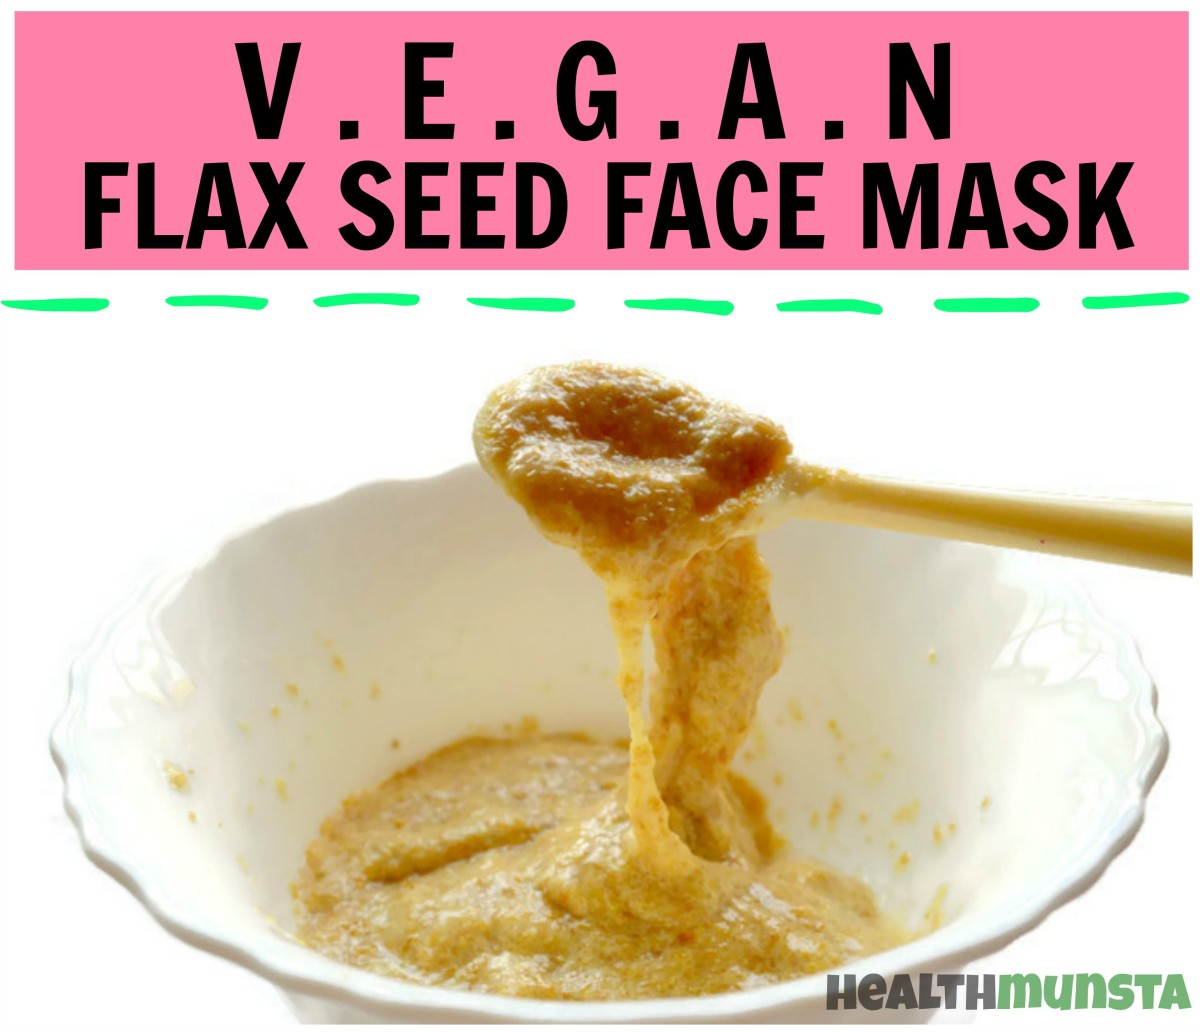 Vegan Flaxseed Face Mask for Beautiful Skin